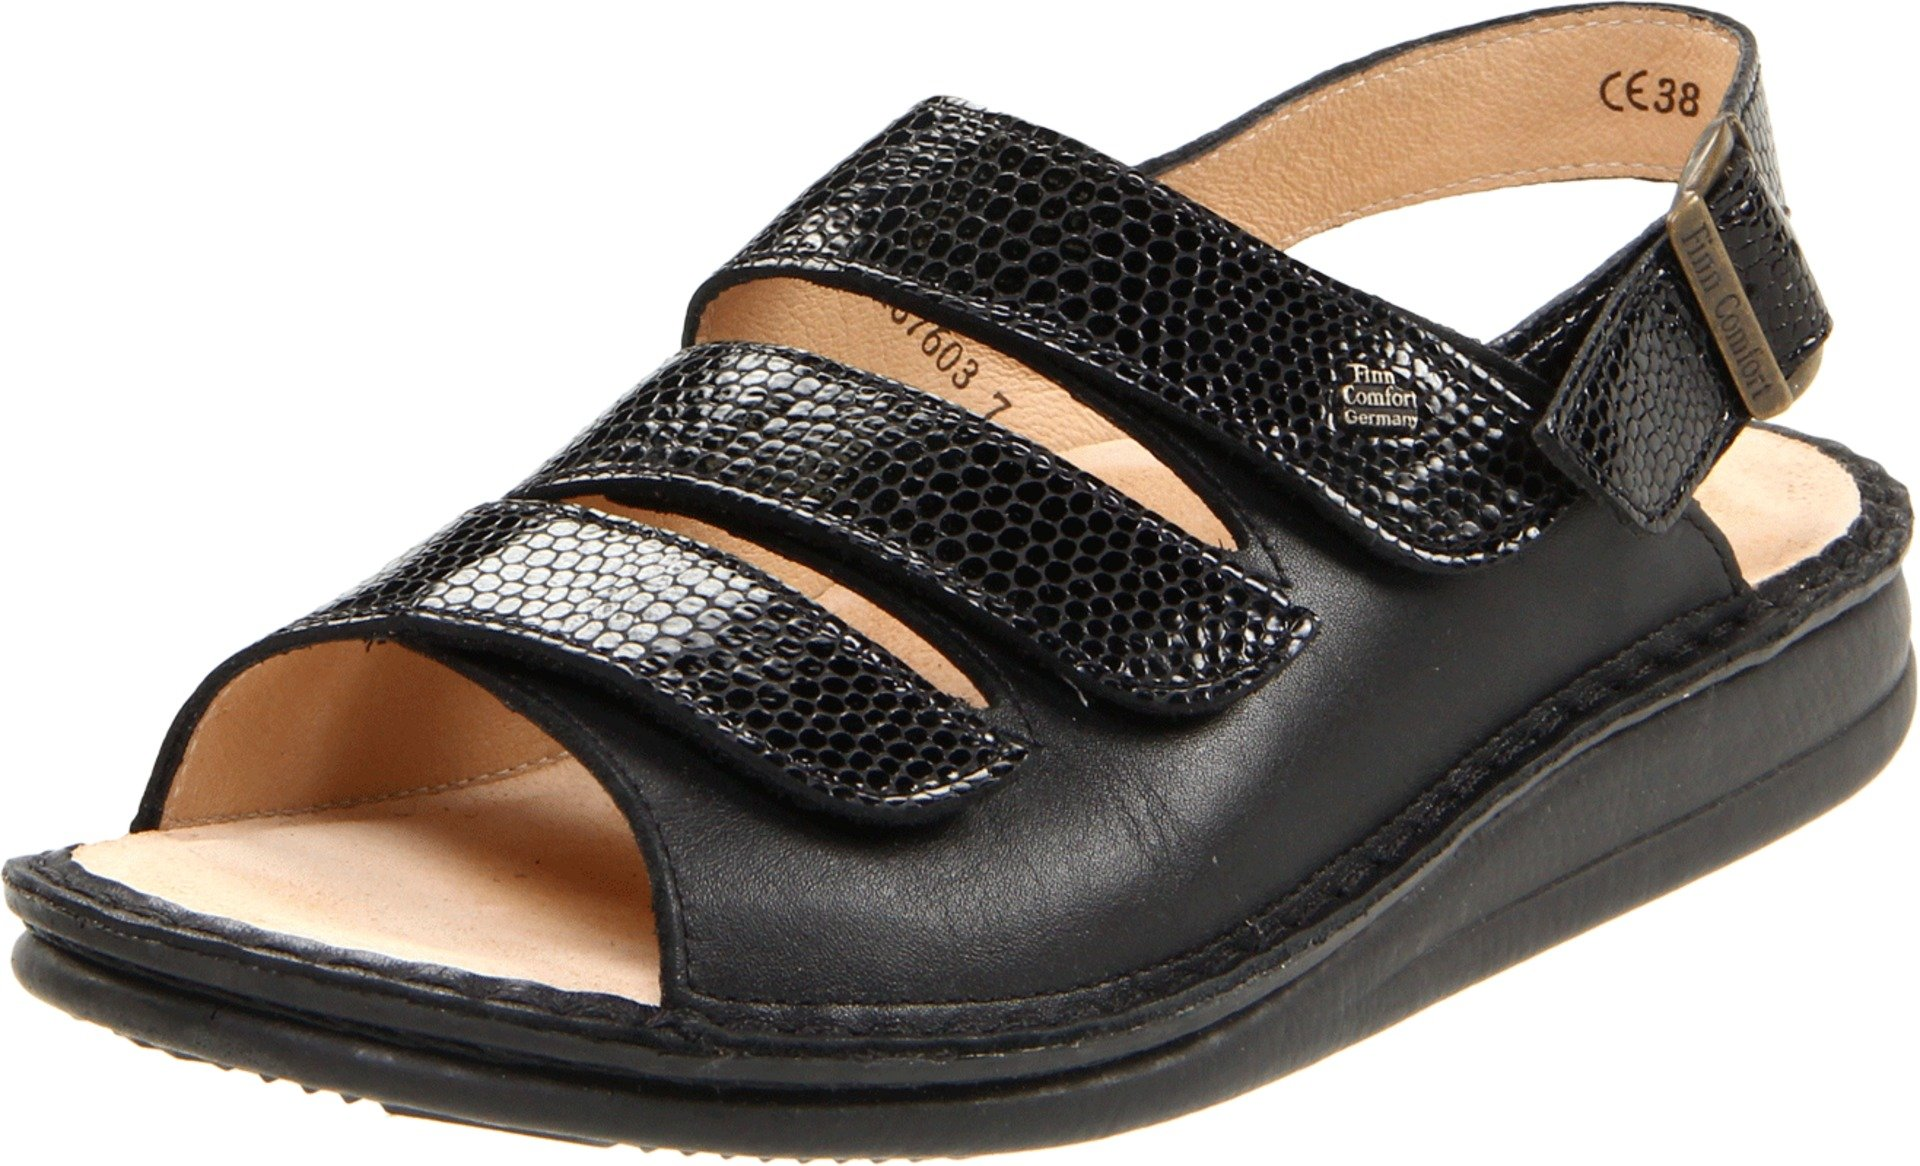 Finn Comfort Women's Sylt - 82509 Black/Snake Nappa Soft Footbed Sandal 41 (US Women's 10.5-11) Medium